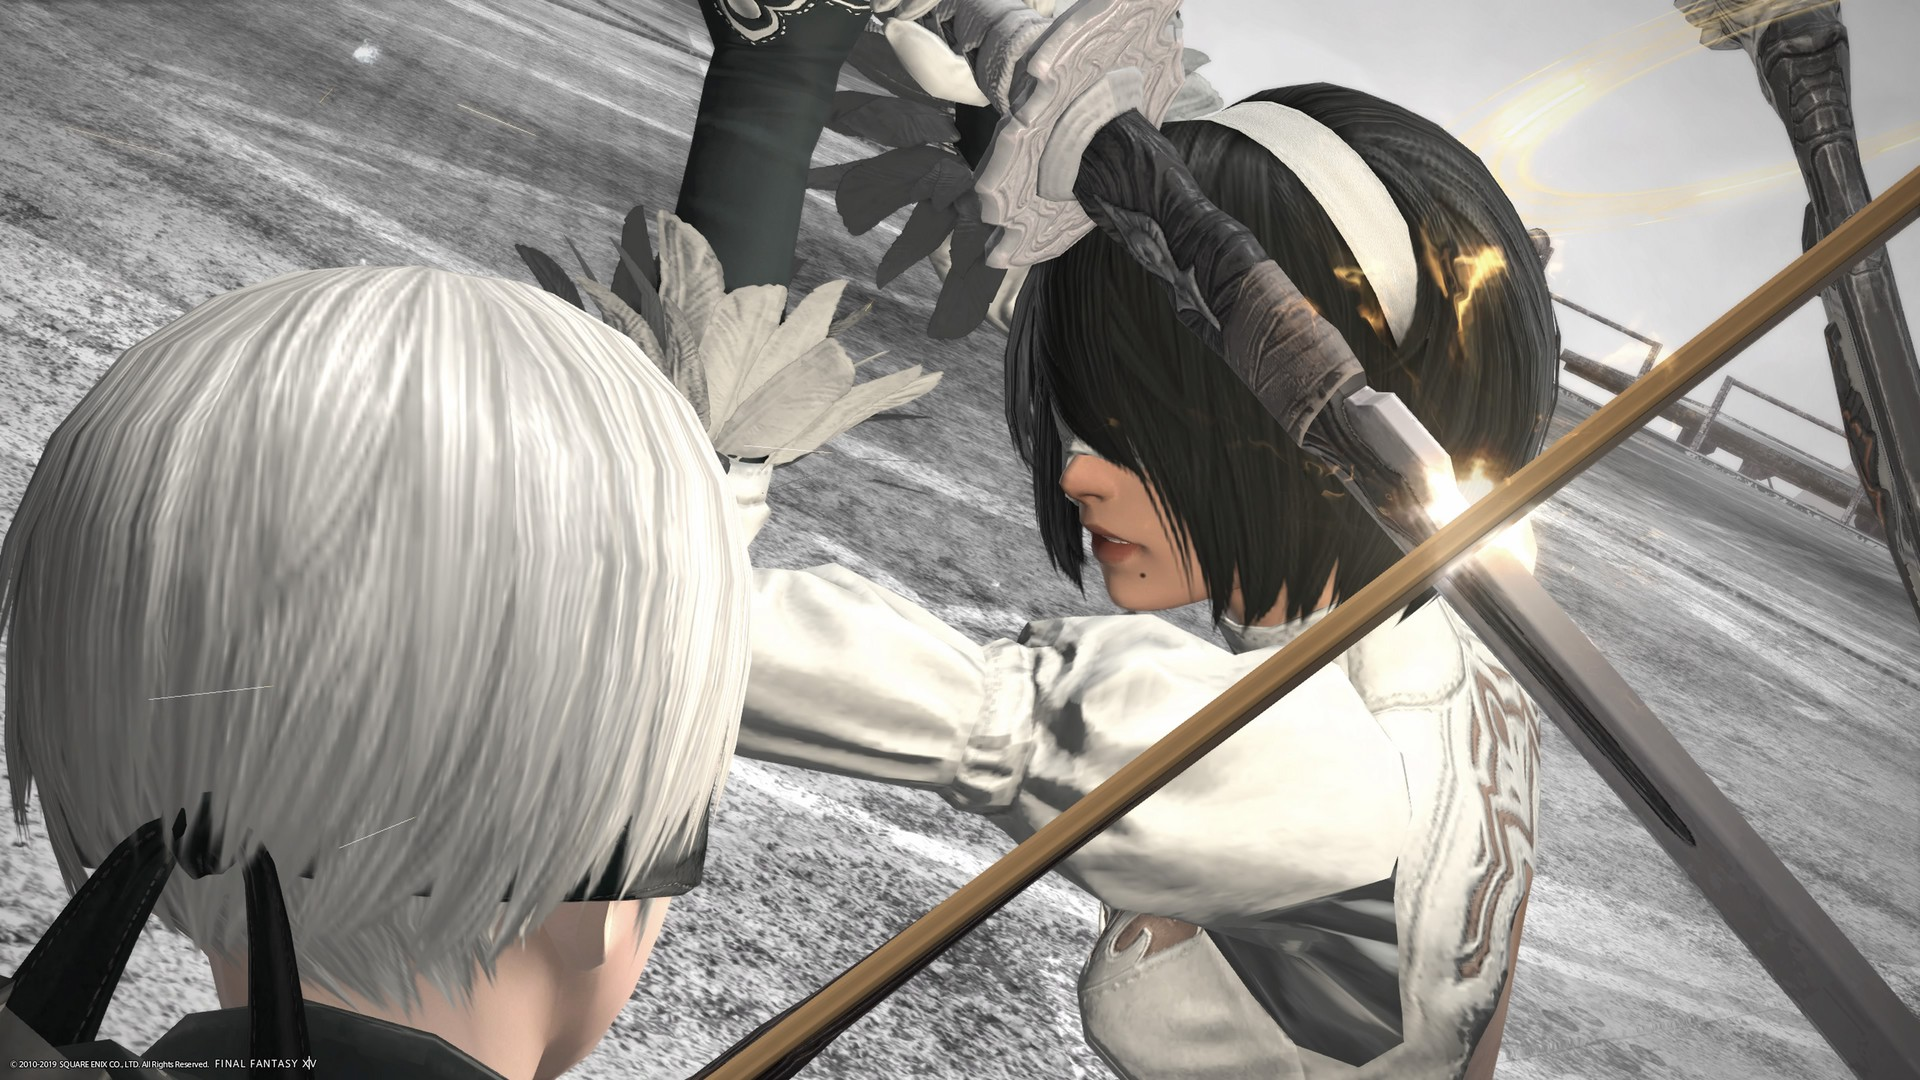 The Latest Final Fantasy Xiv Crossover Event Shows Nier